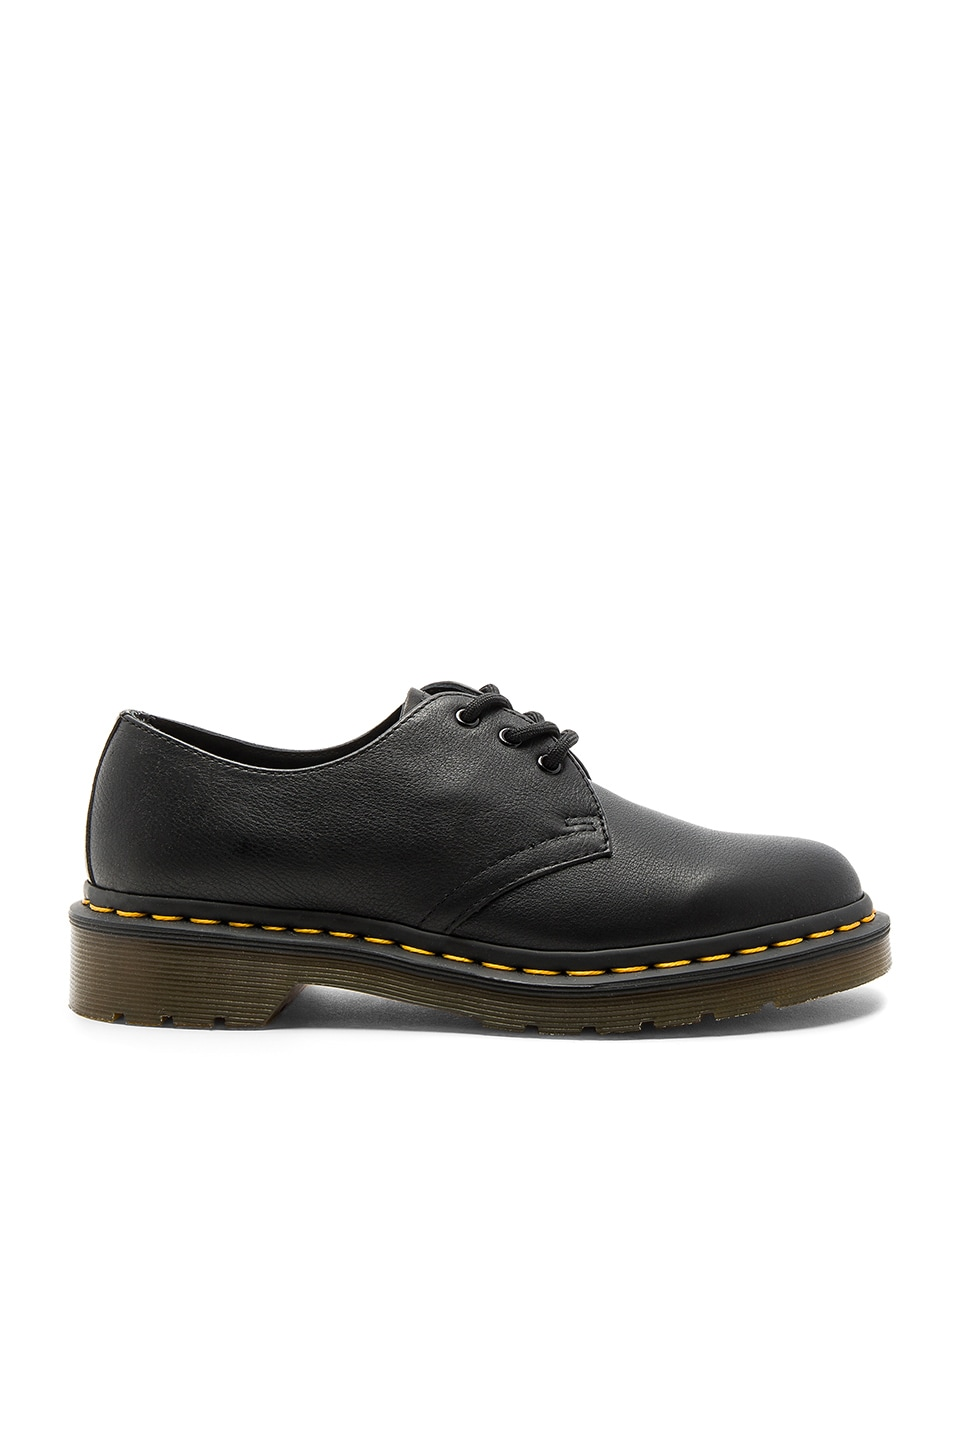 Dr. Martens 1461 3 Eye Flats in Black